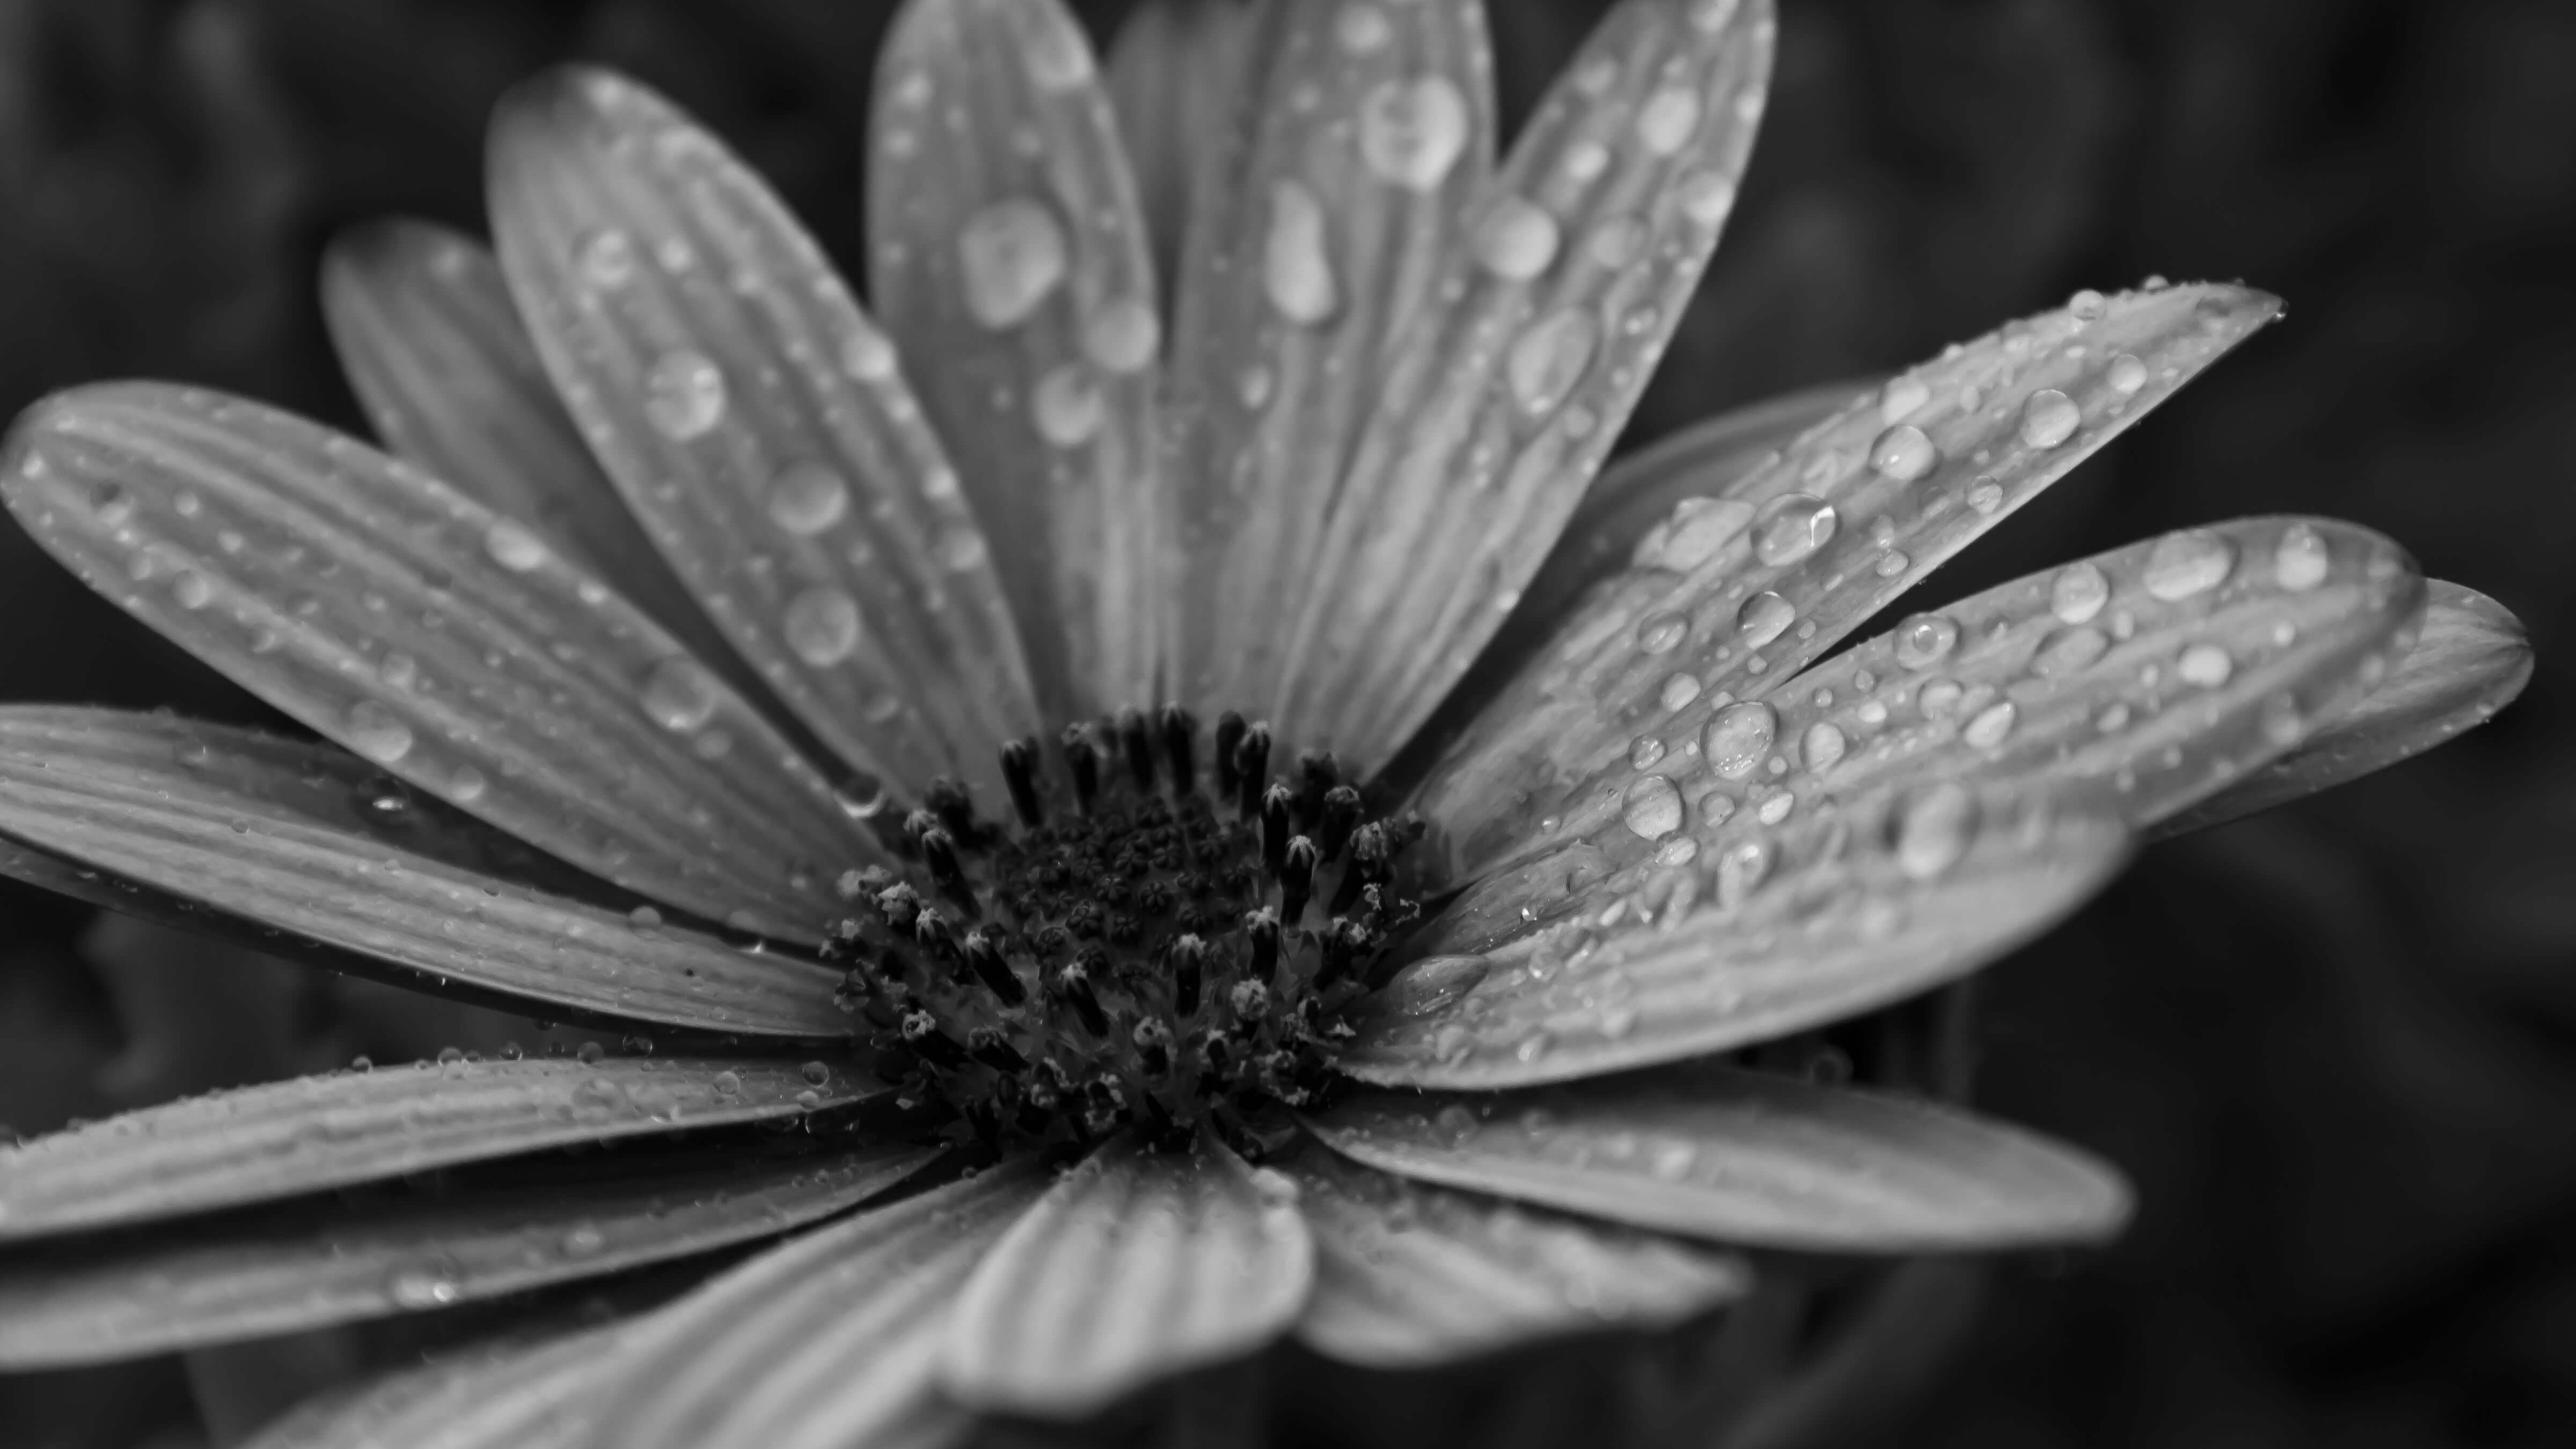 Macro Floral Black And White 4k Wallpaper